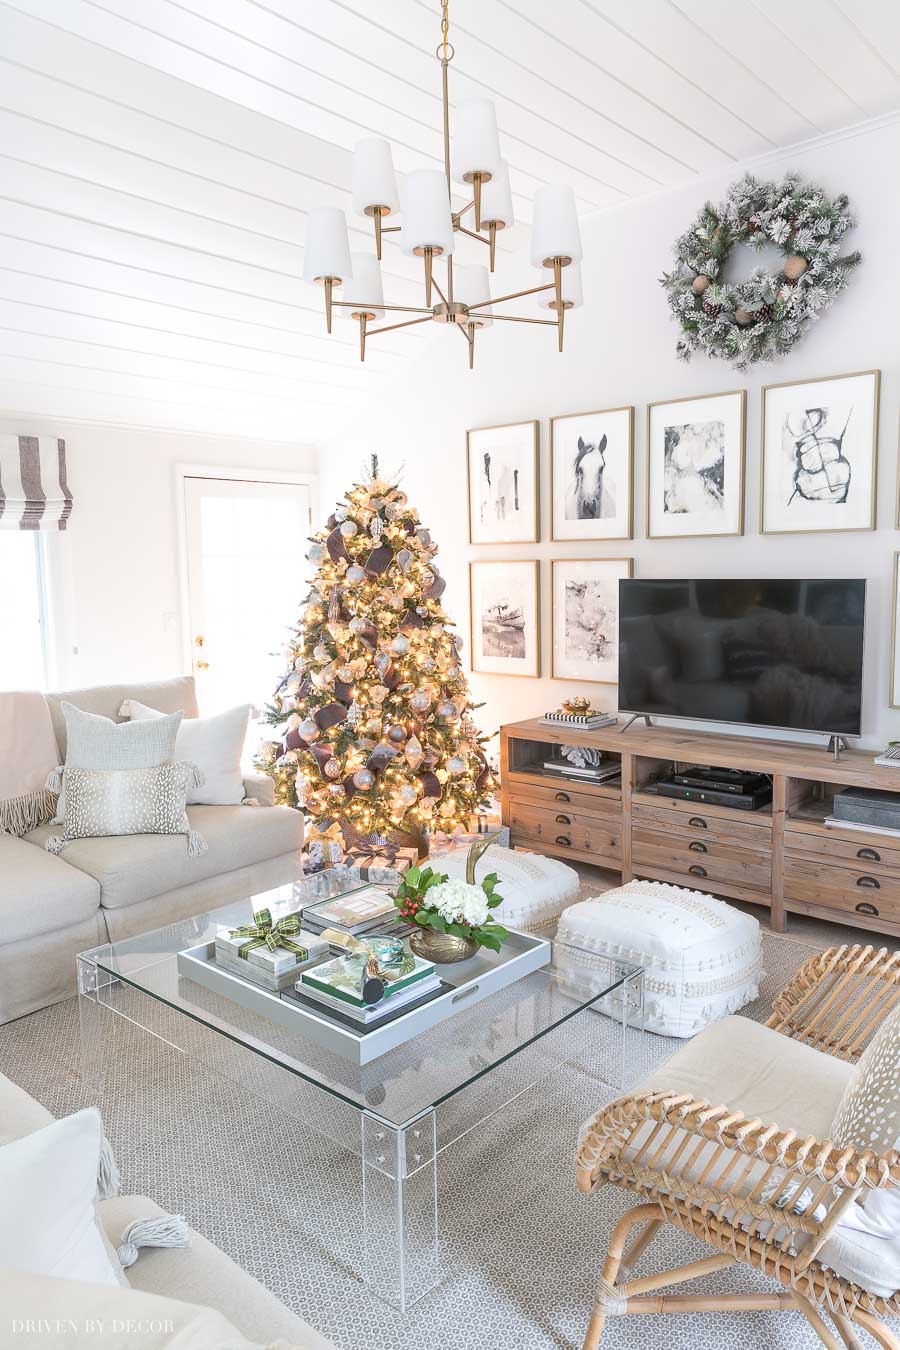 Tour our family room decorated for Christmas!